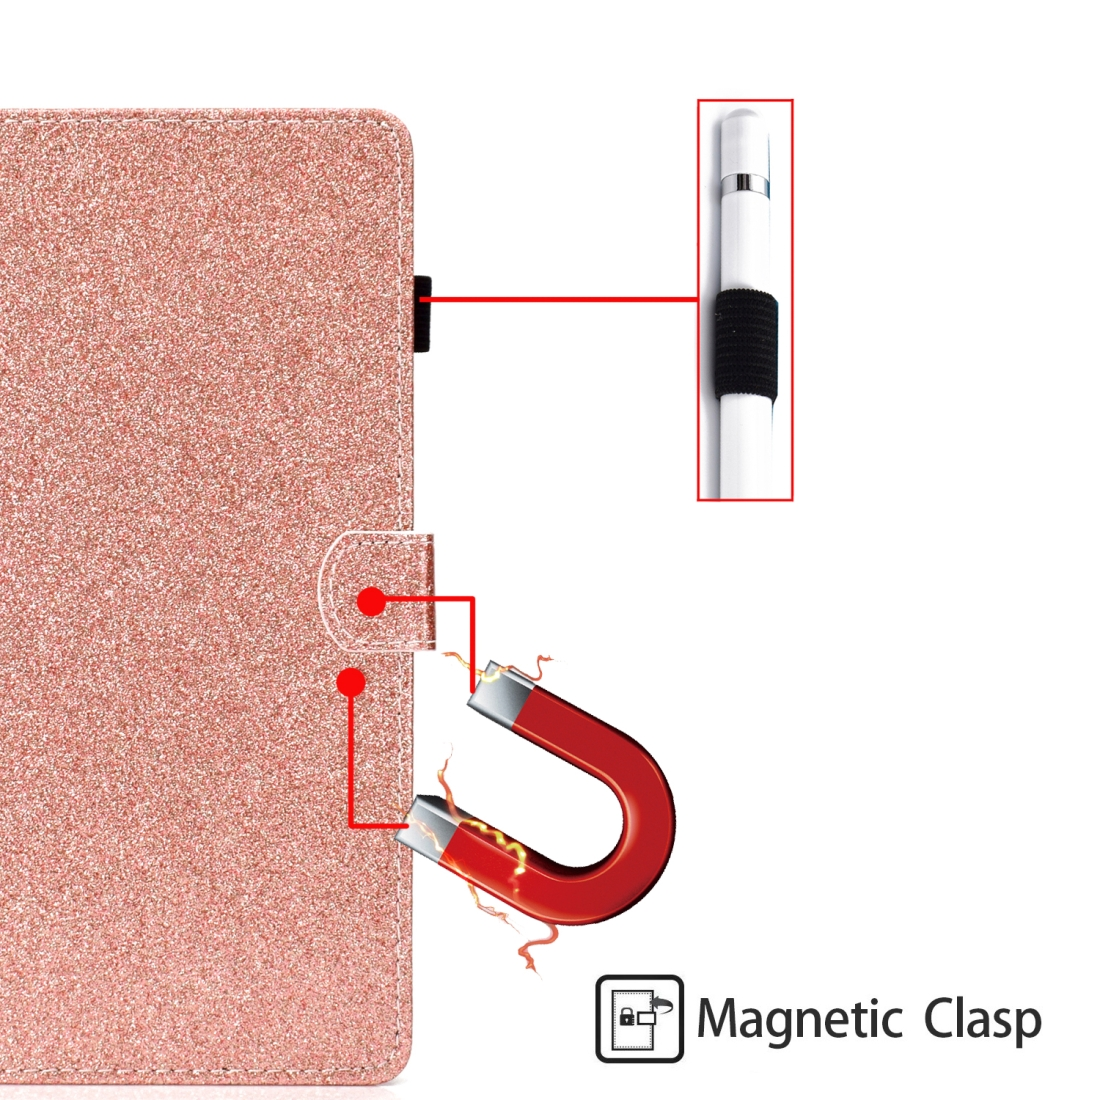 Bling Glitter Leather iPad Mini 5 Case, Also Fits iPad Mini 1,2,3,4, With Sleeve (Rose Gold)